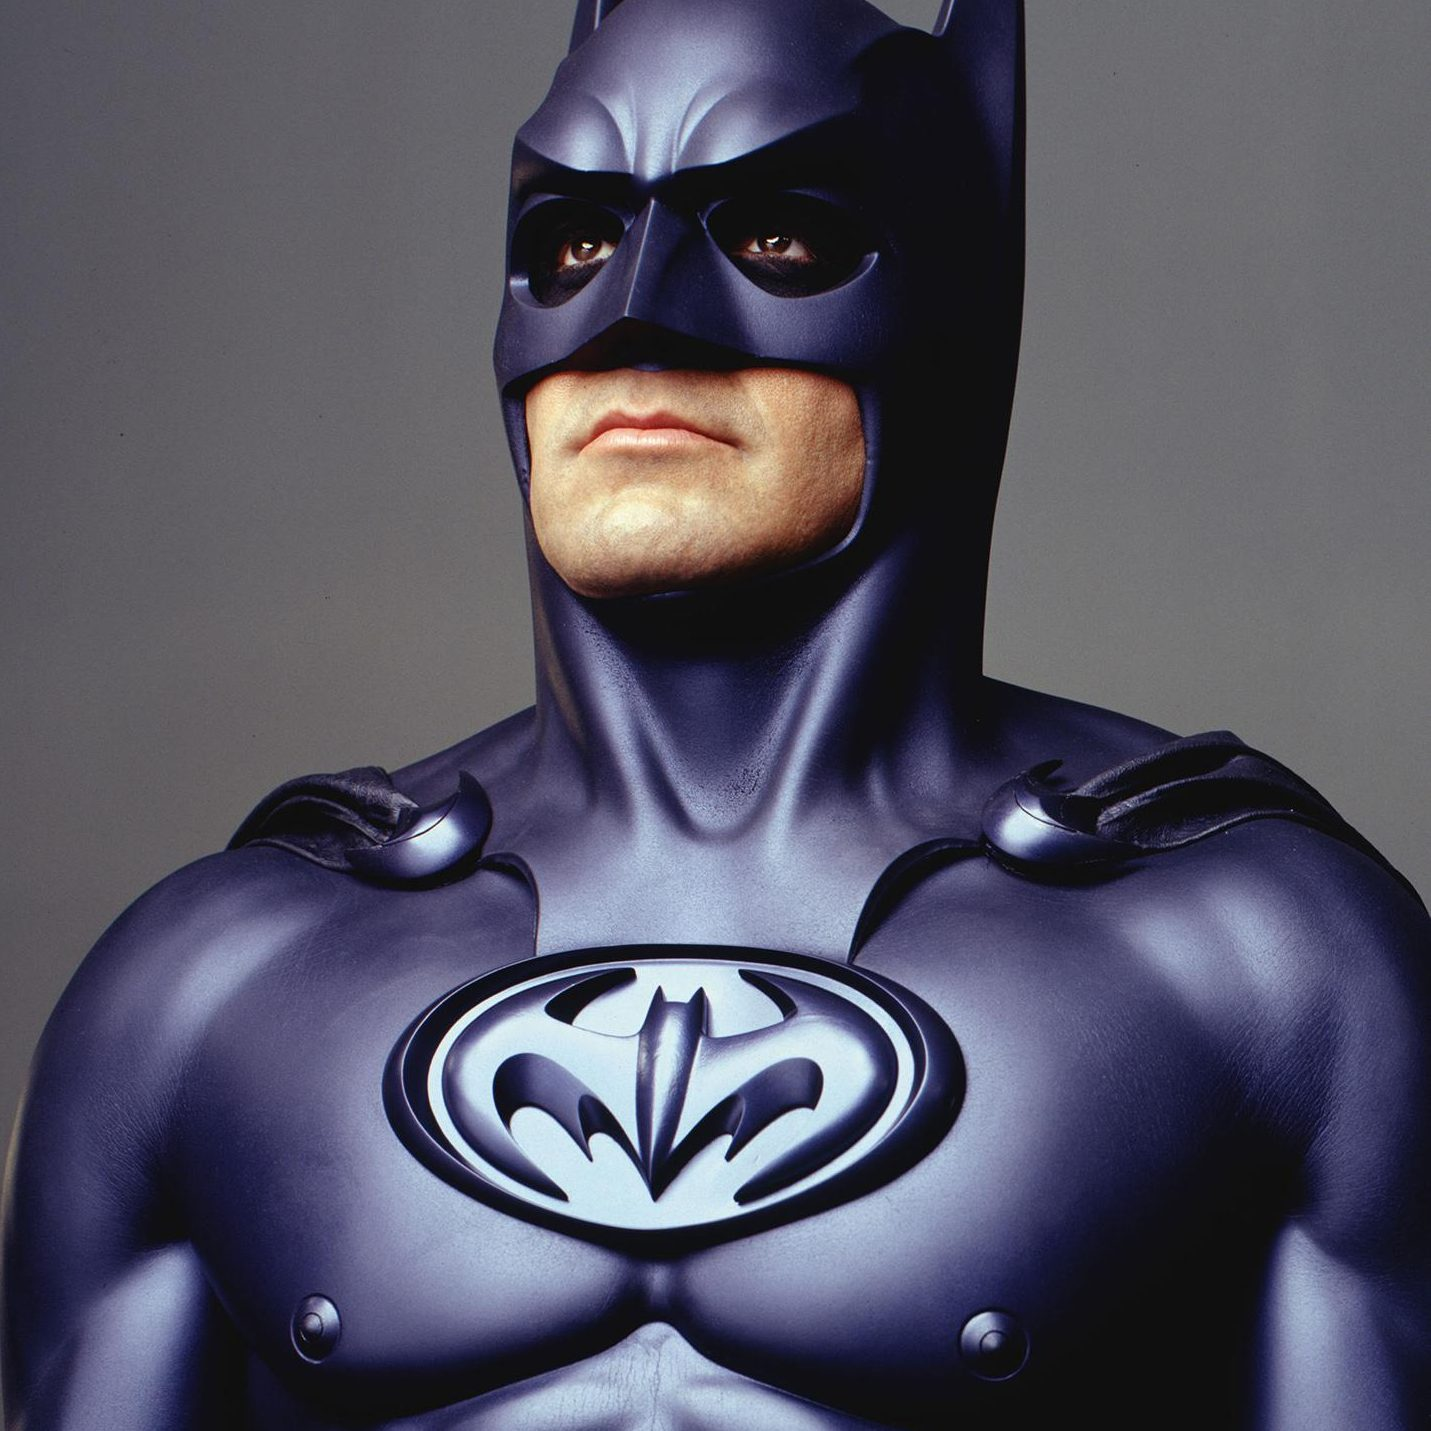 puqjgnjksfj31 e1602687050556 20 Things You Might Not Have Realised About The 1997 Film Batman & Robin